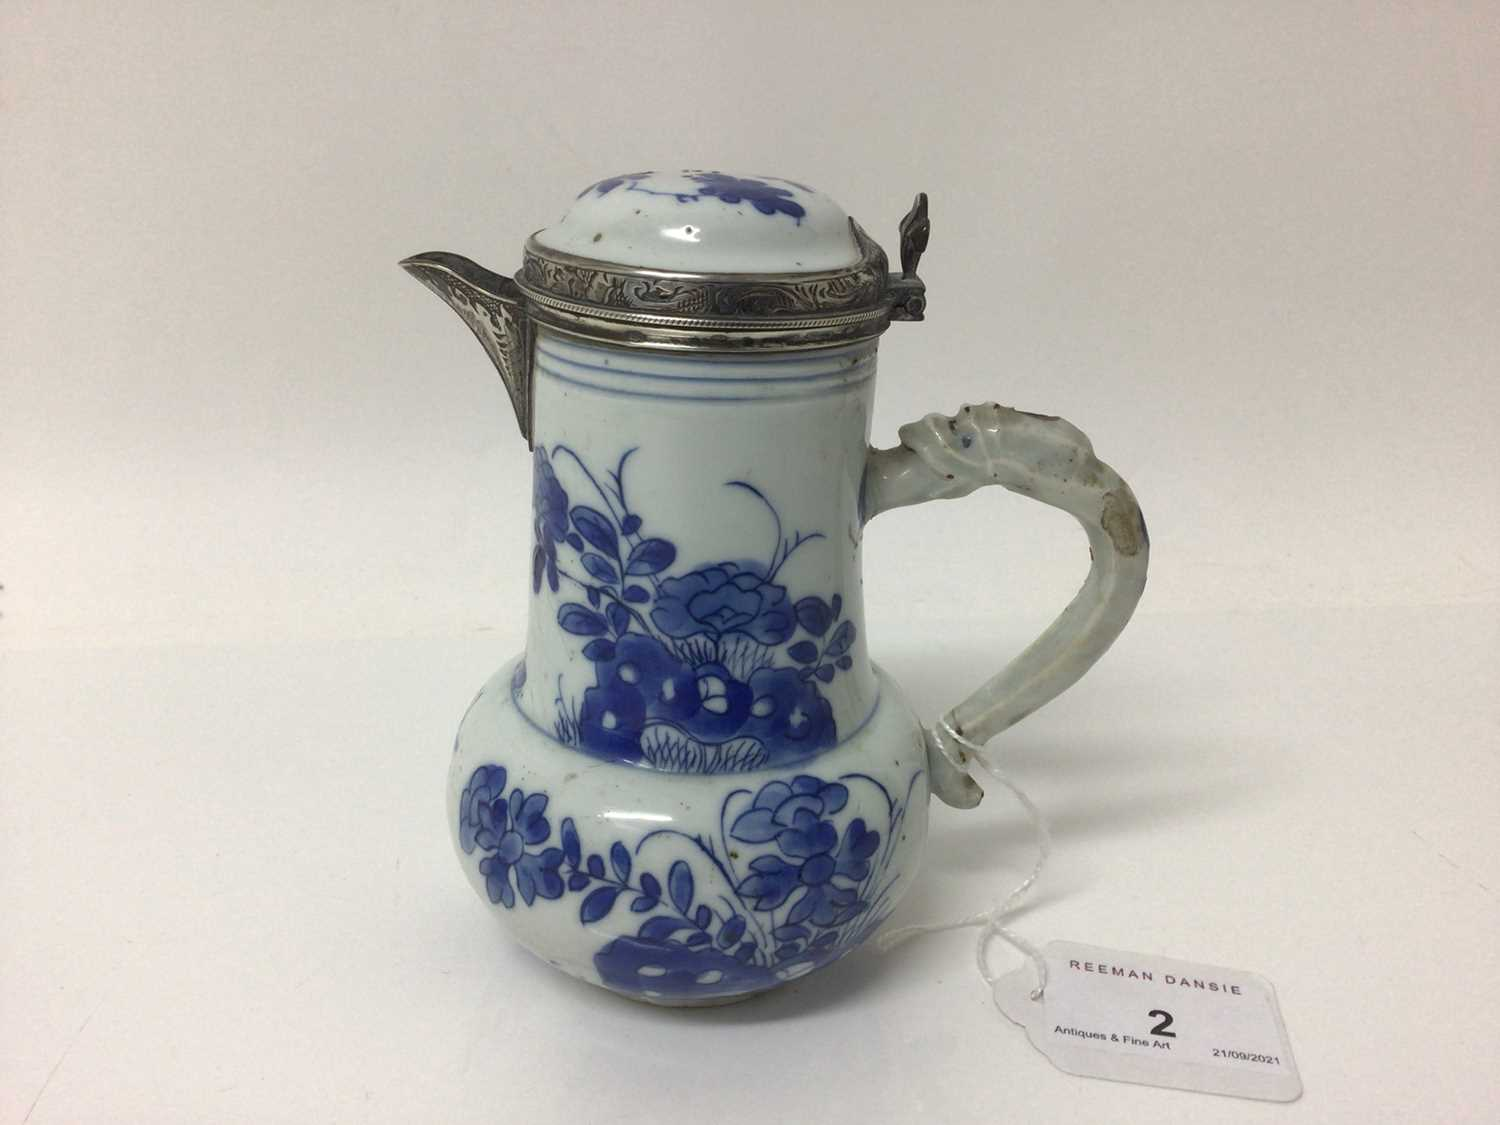 Chinese Kangxi porcelain jug and cover with later silver mount, together with a bowl (2) - Image 8 of 16